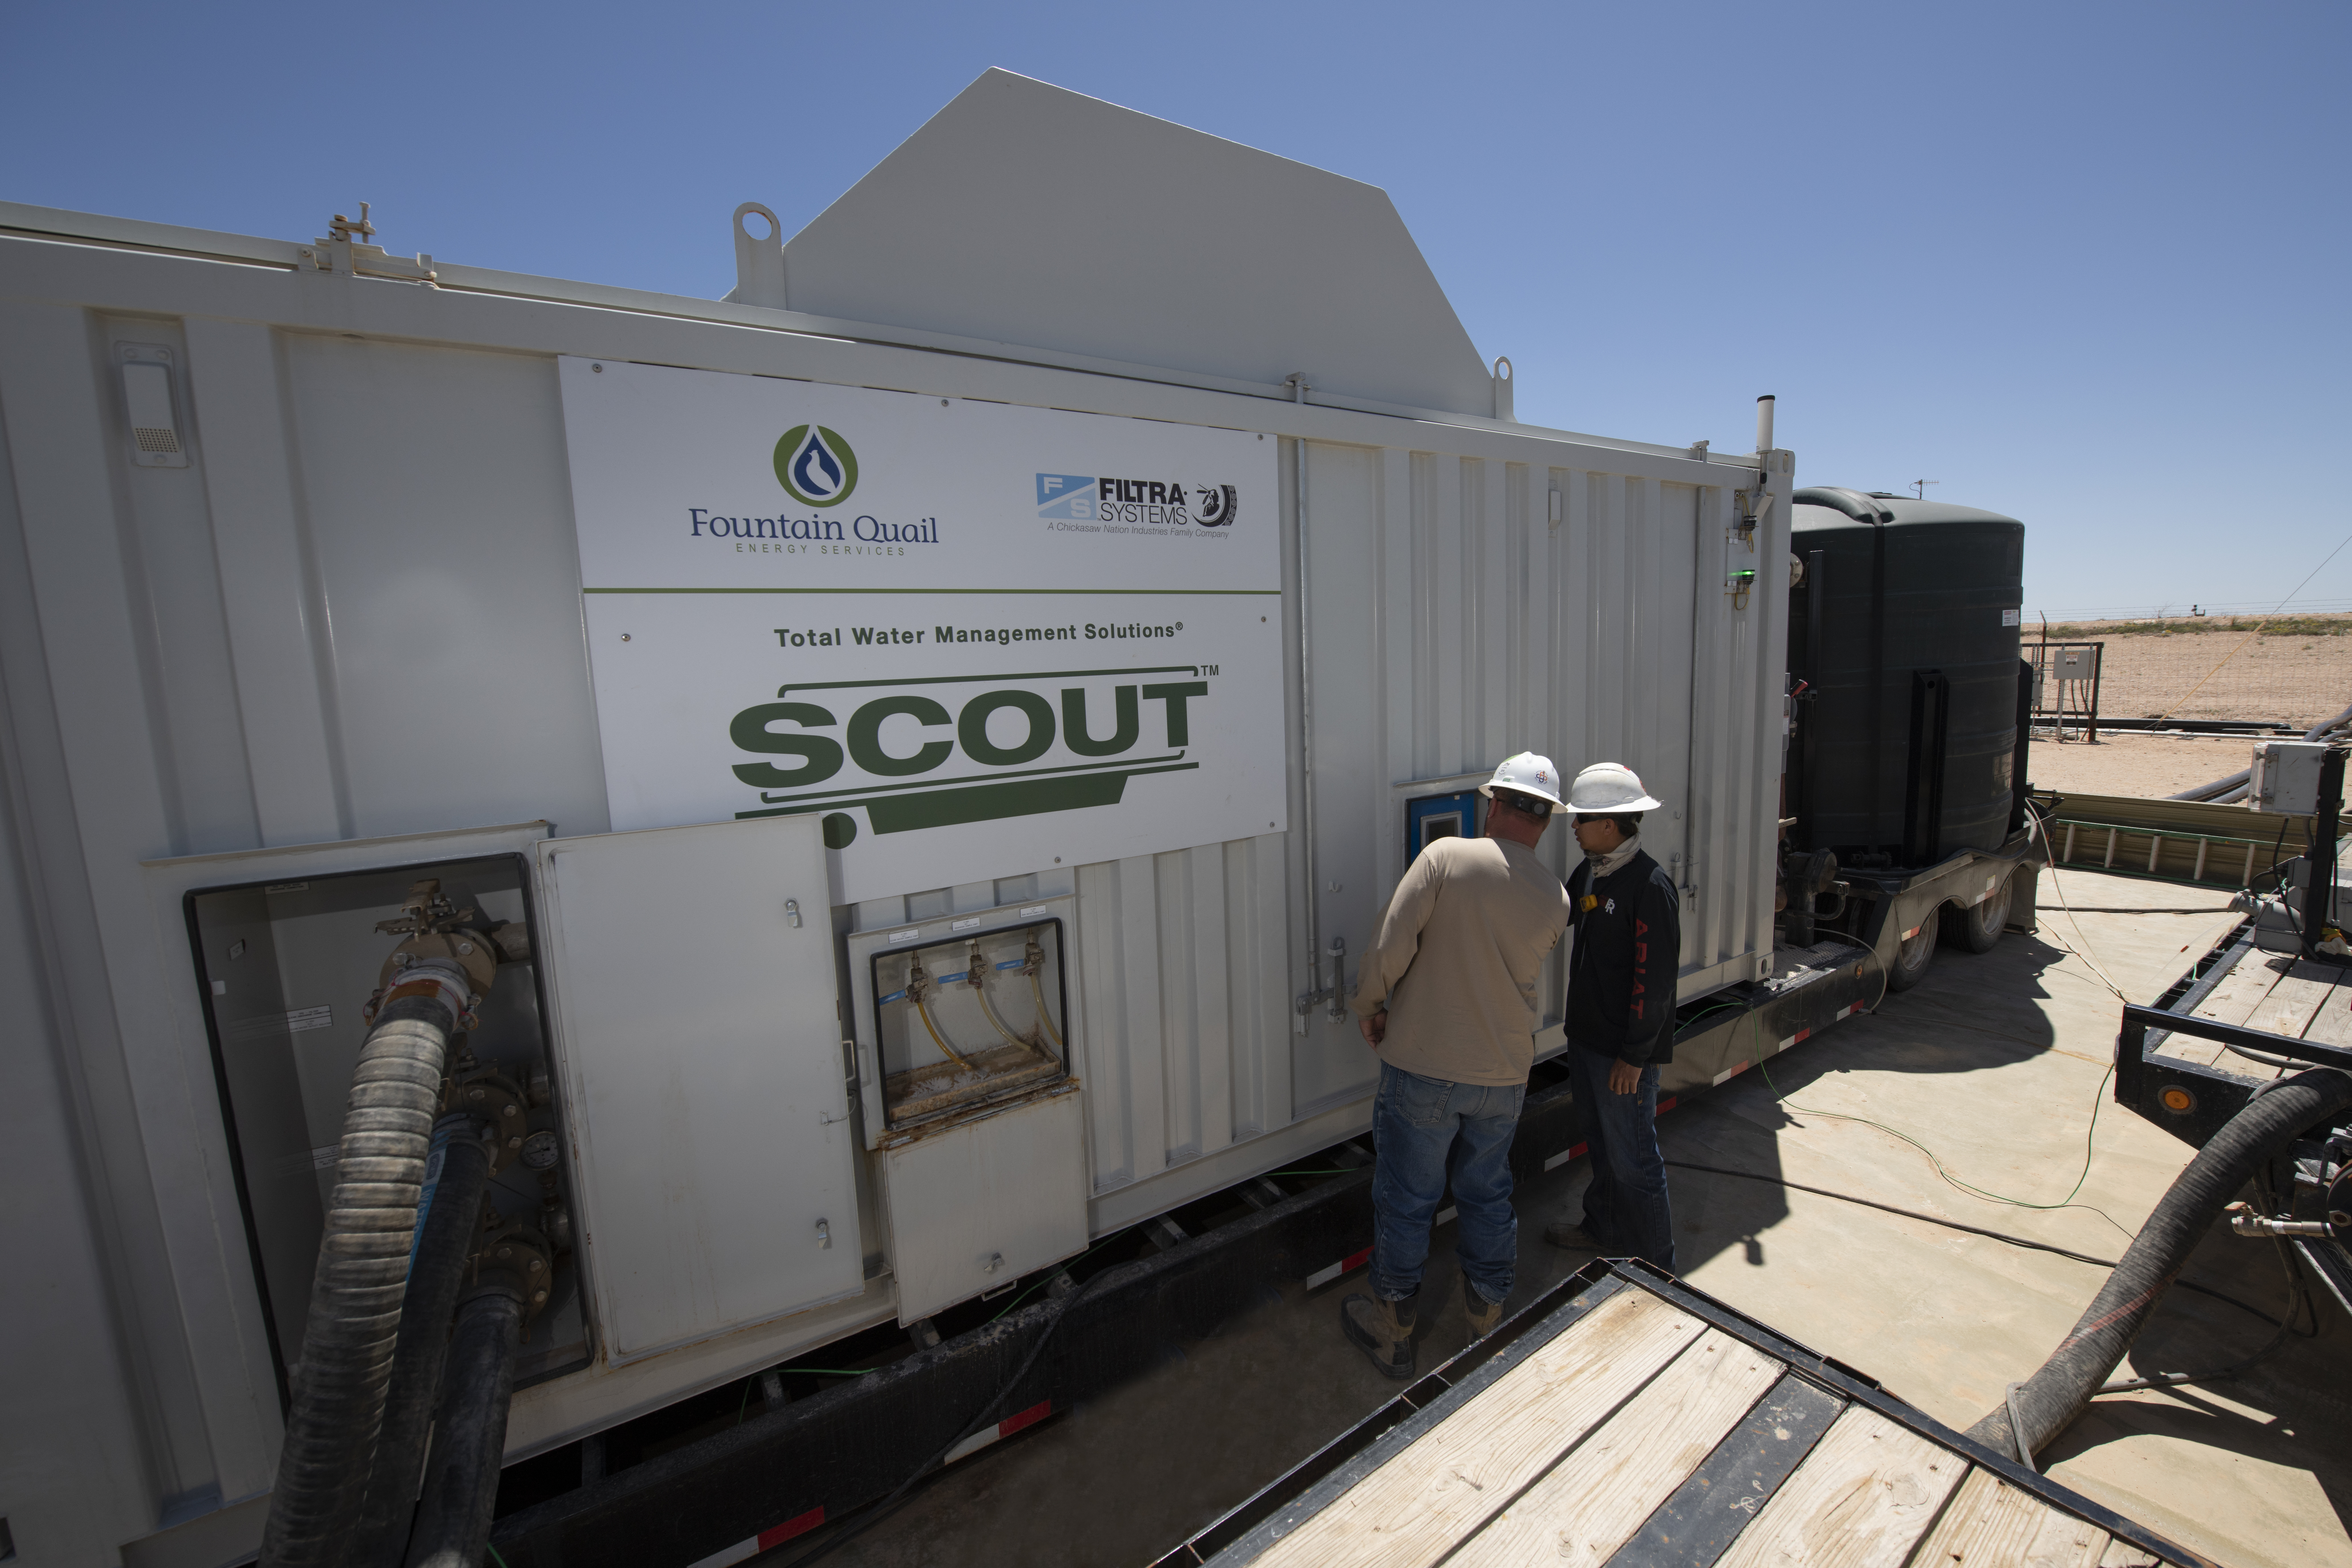 One of the 14 mobile SCOUT units operated in the Permian Basin in May. (Source: Fountain Quail Water Management)